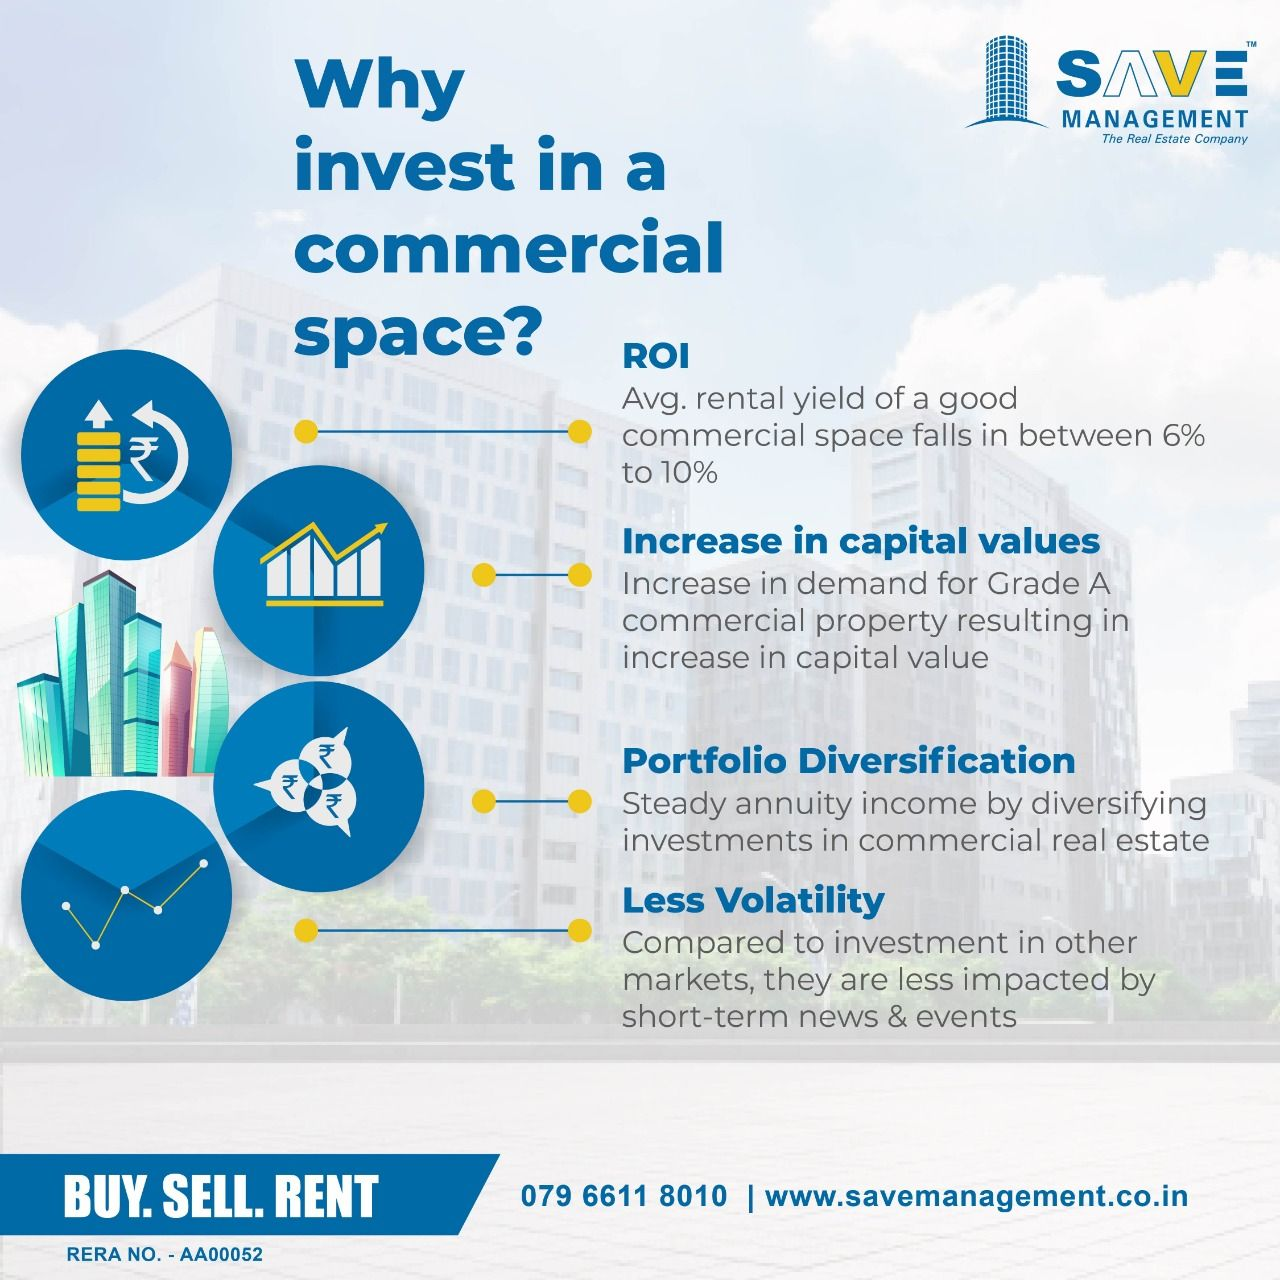 Commercial Spaces Investing Commercial Real Estate Commercial